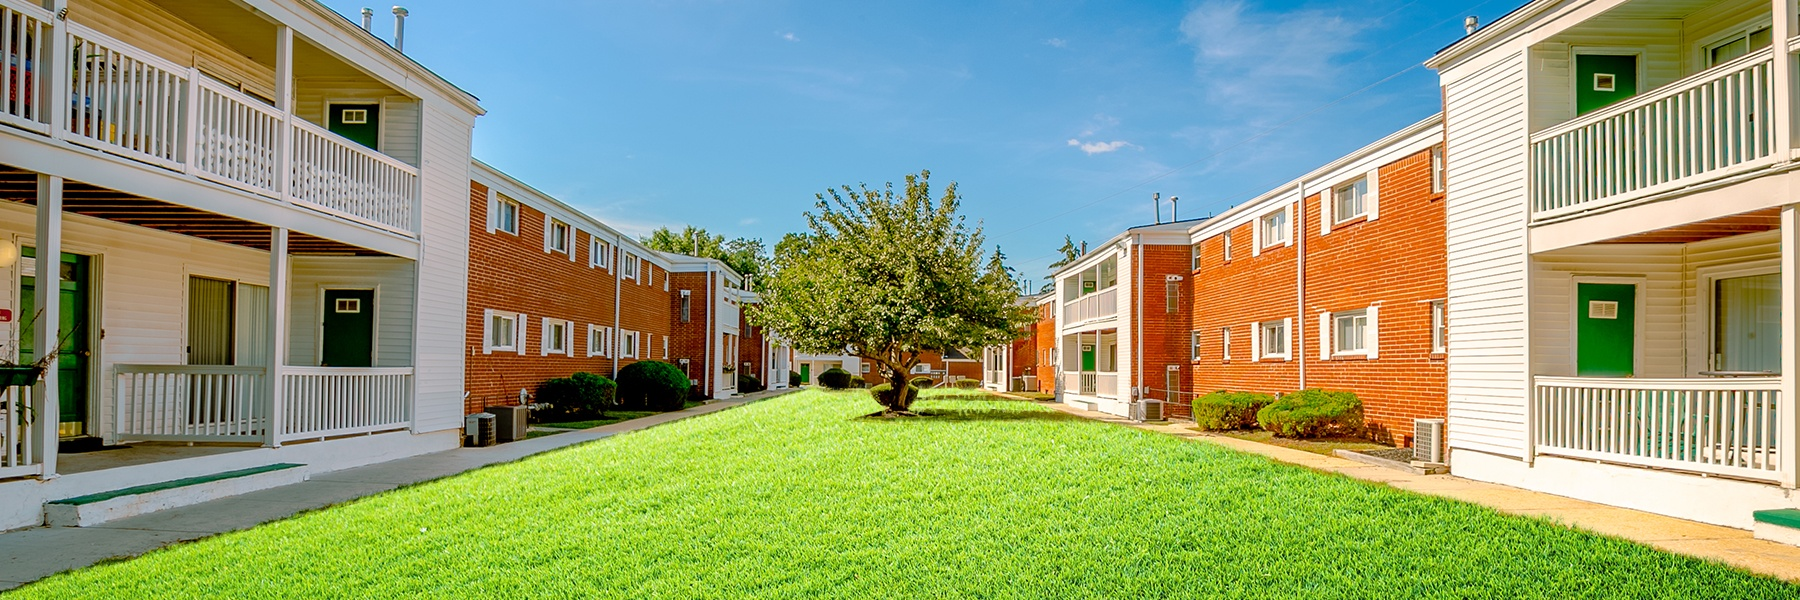 Woodmere Apartments property grounds